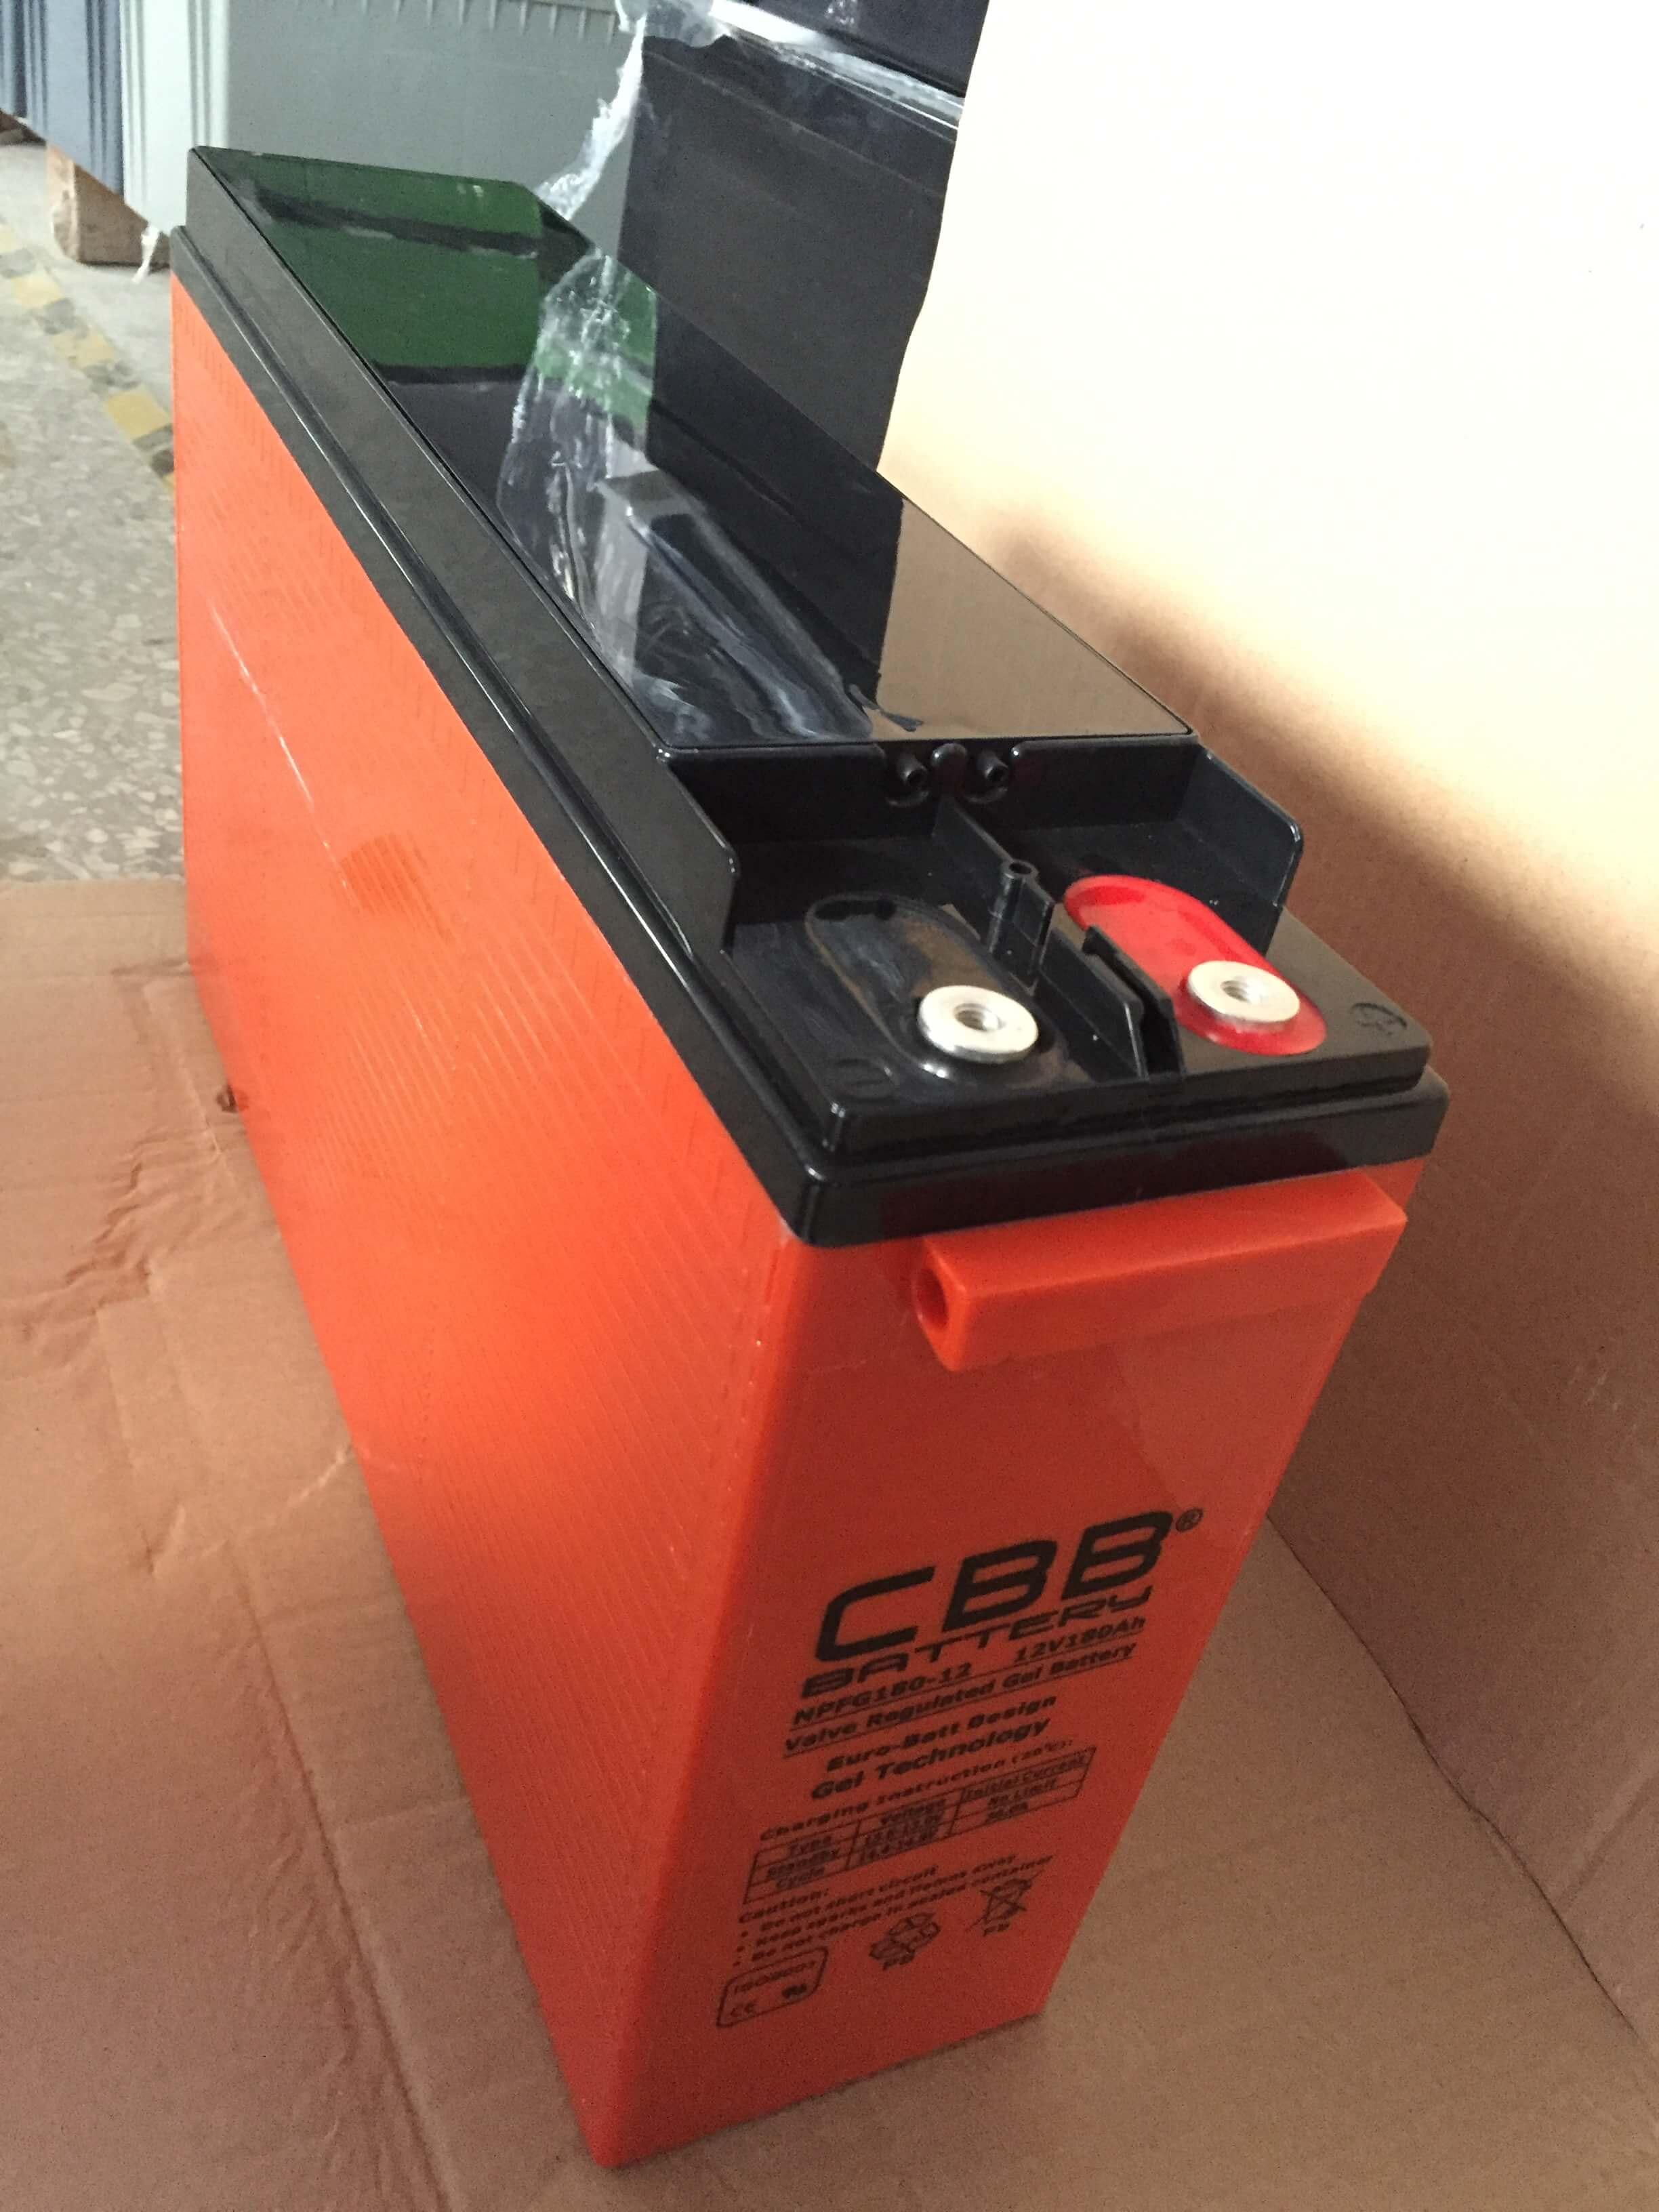 CBB® NPFG210-12 Eurobatt Gel Battery